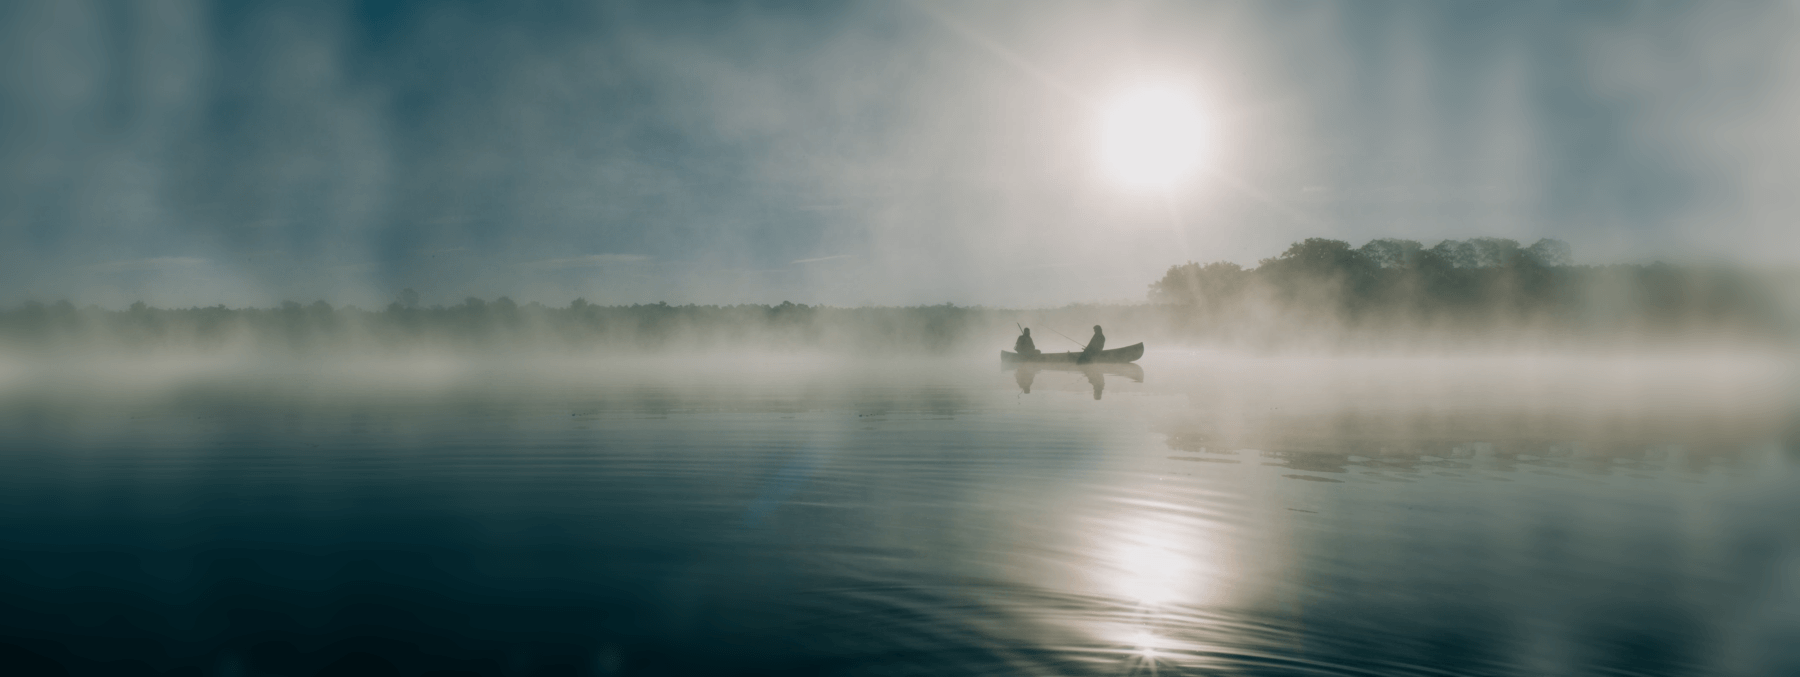 background lake with boat